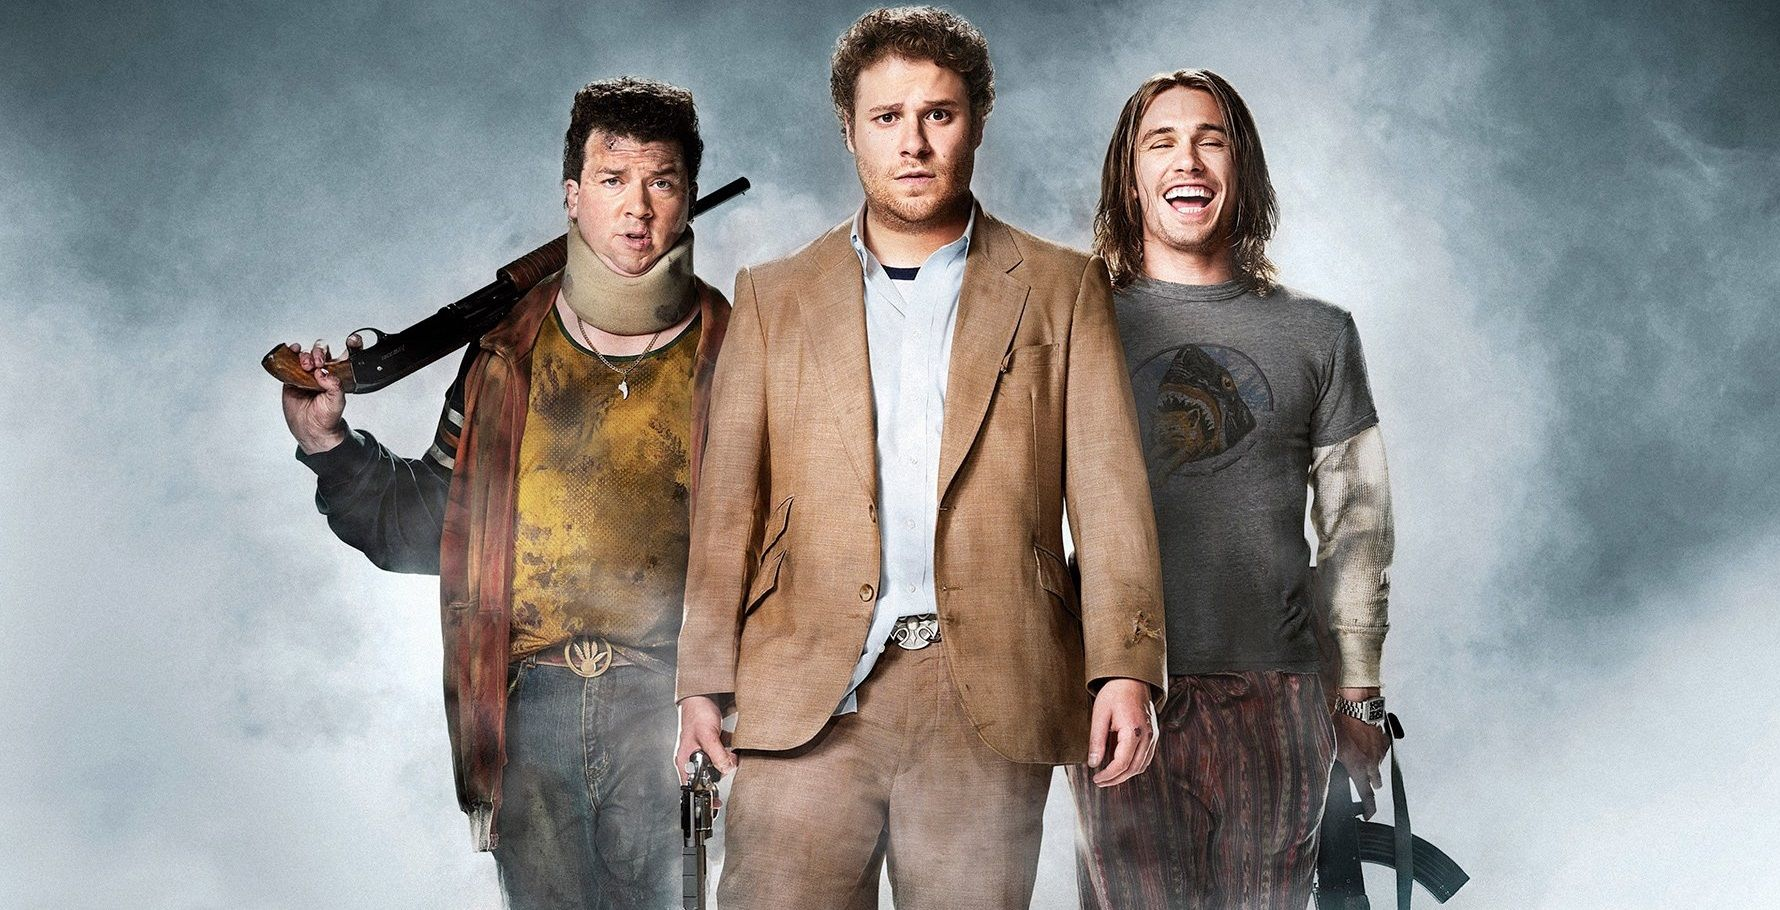 10 Funniest Quotes From Pineapple Express | ScreenRant